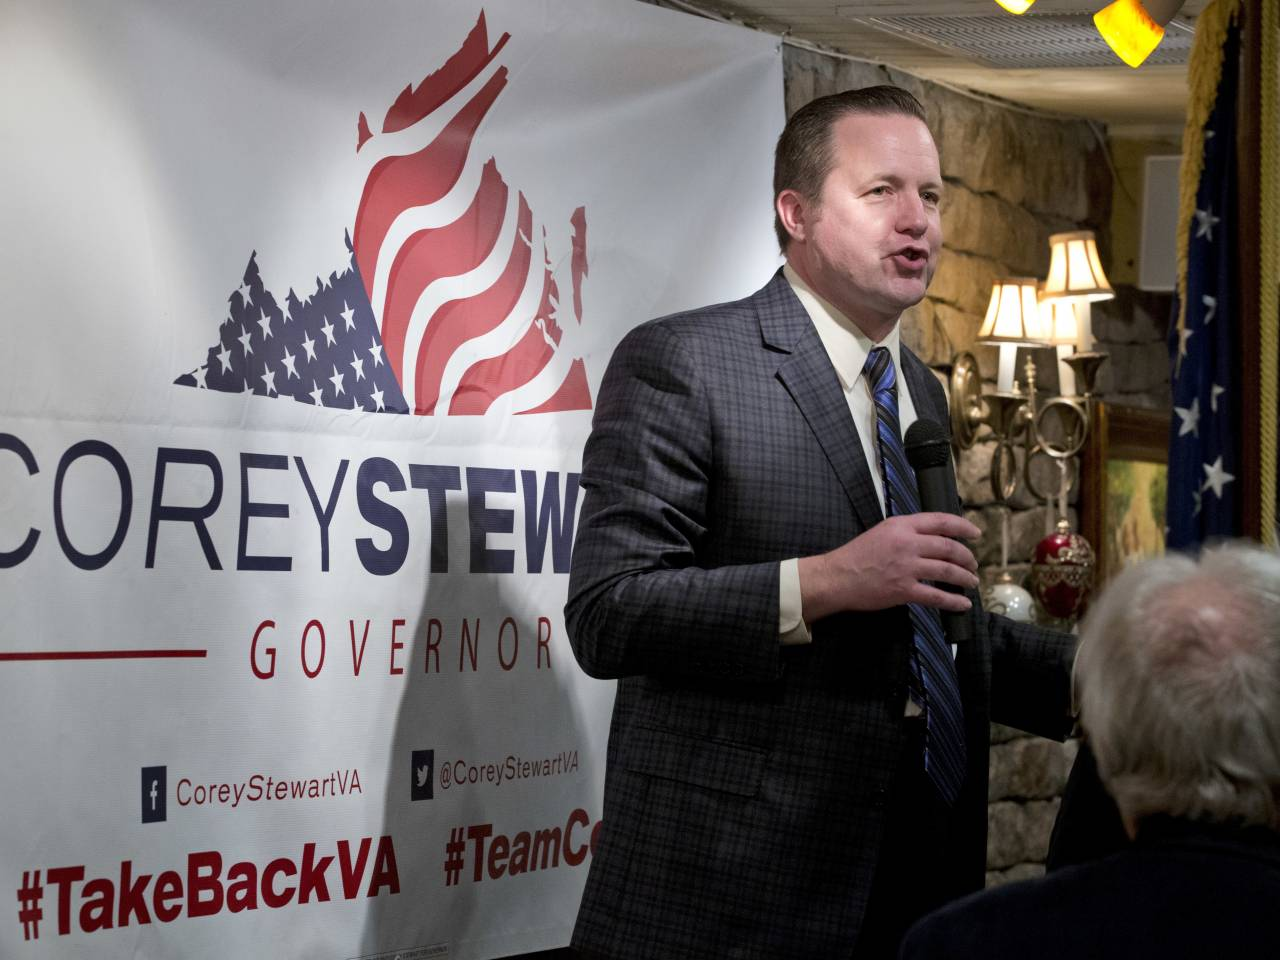 Stewart considering US Senate run after primary showing